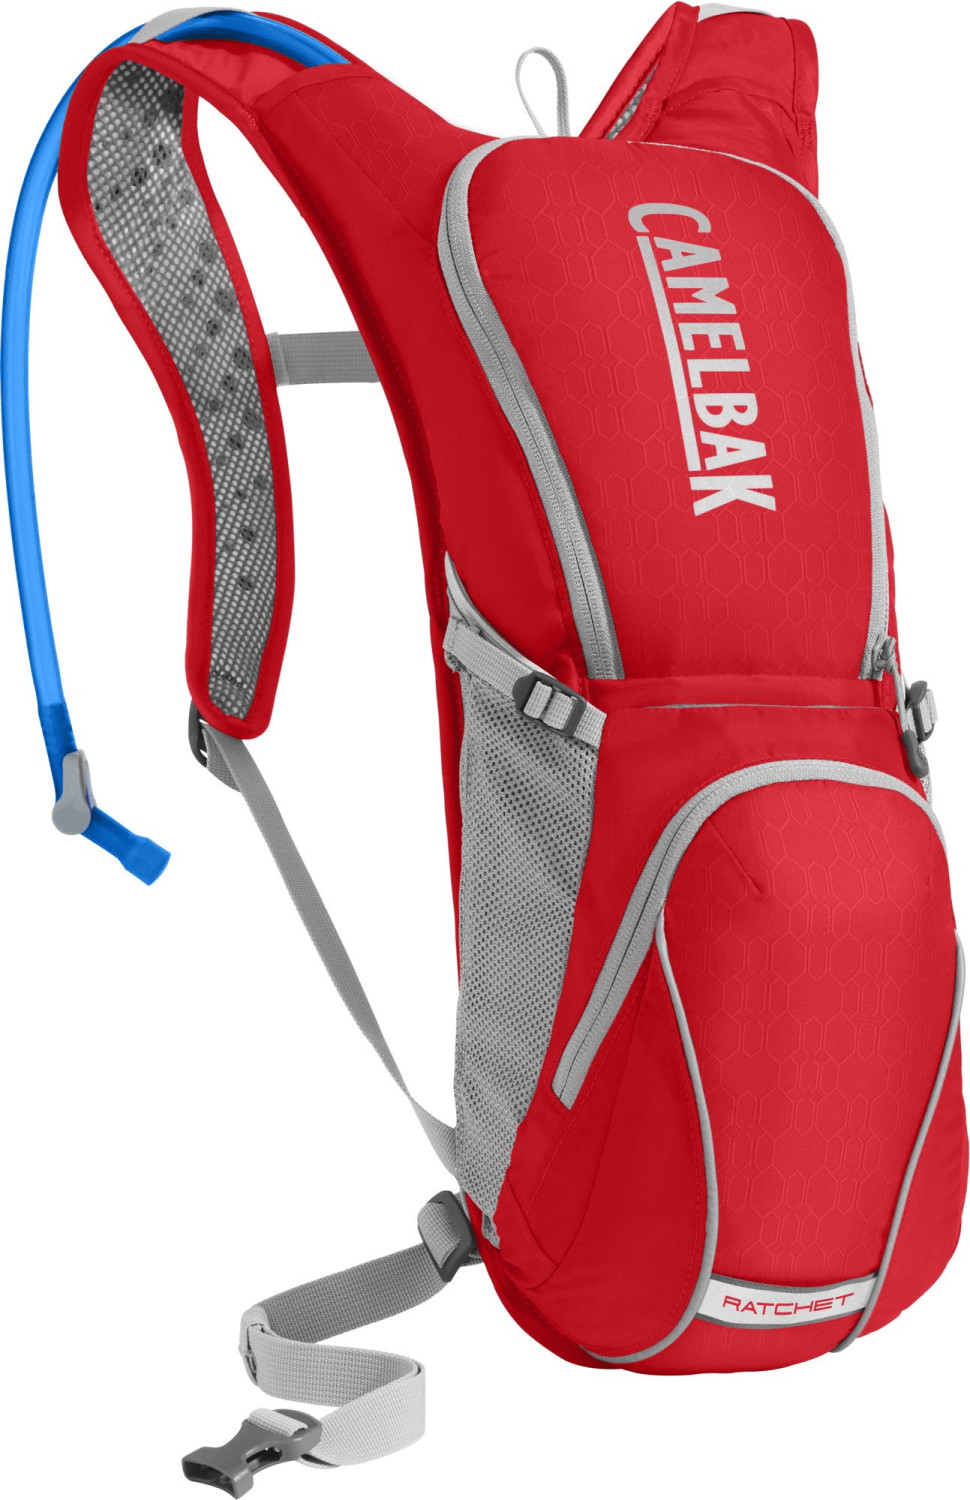 Image of Camelbak Ratchet racing red/silver